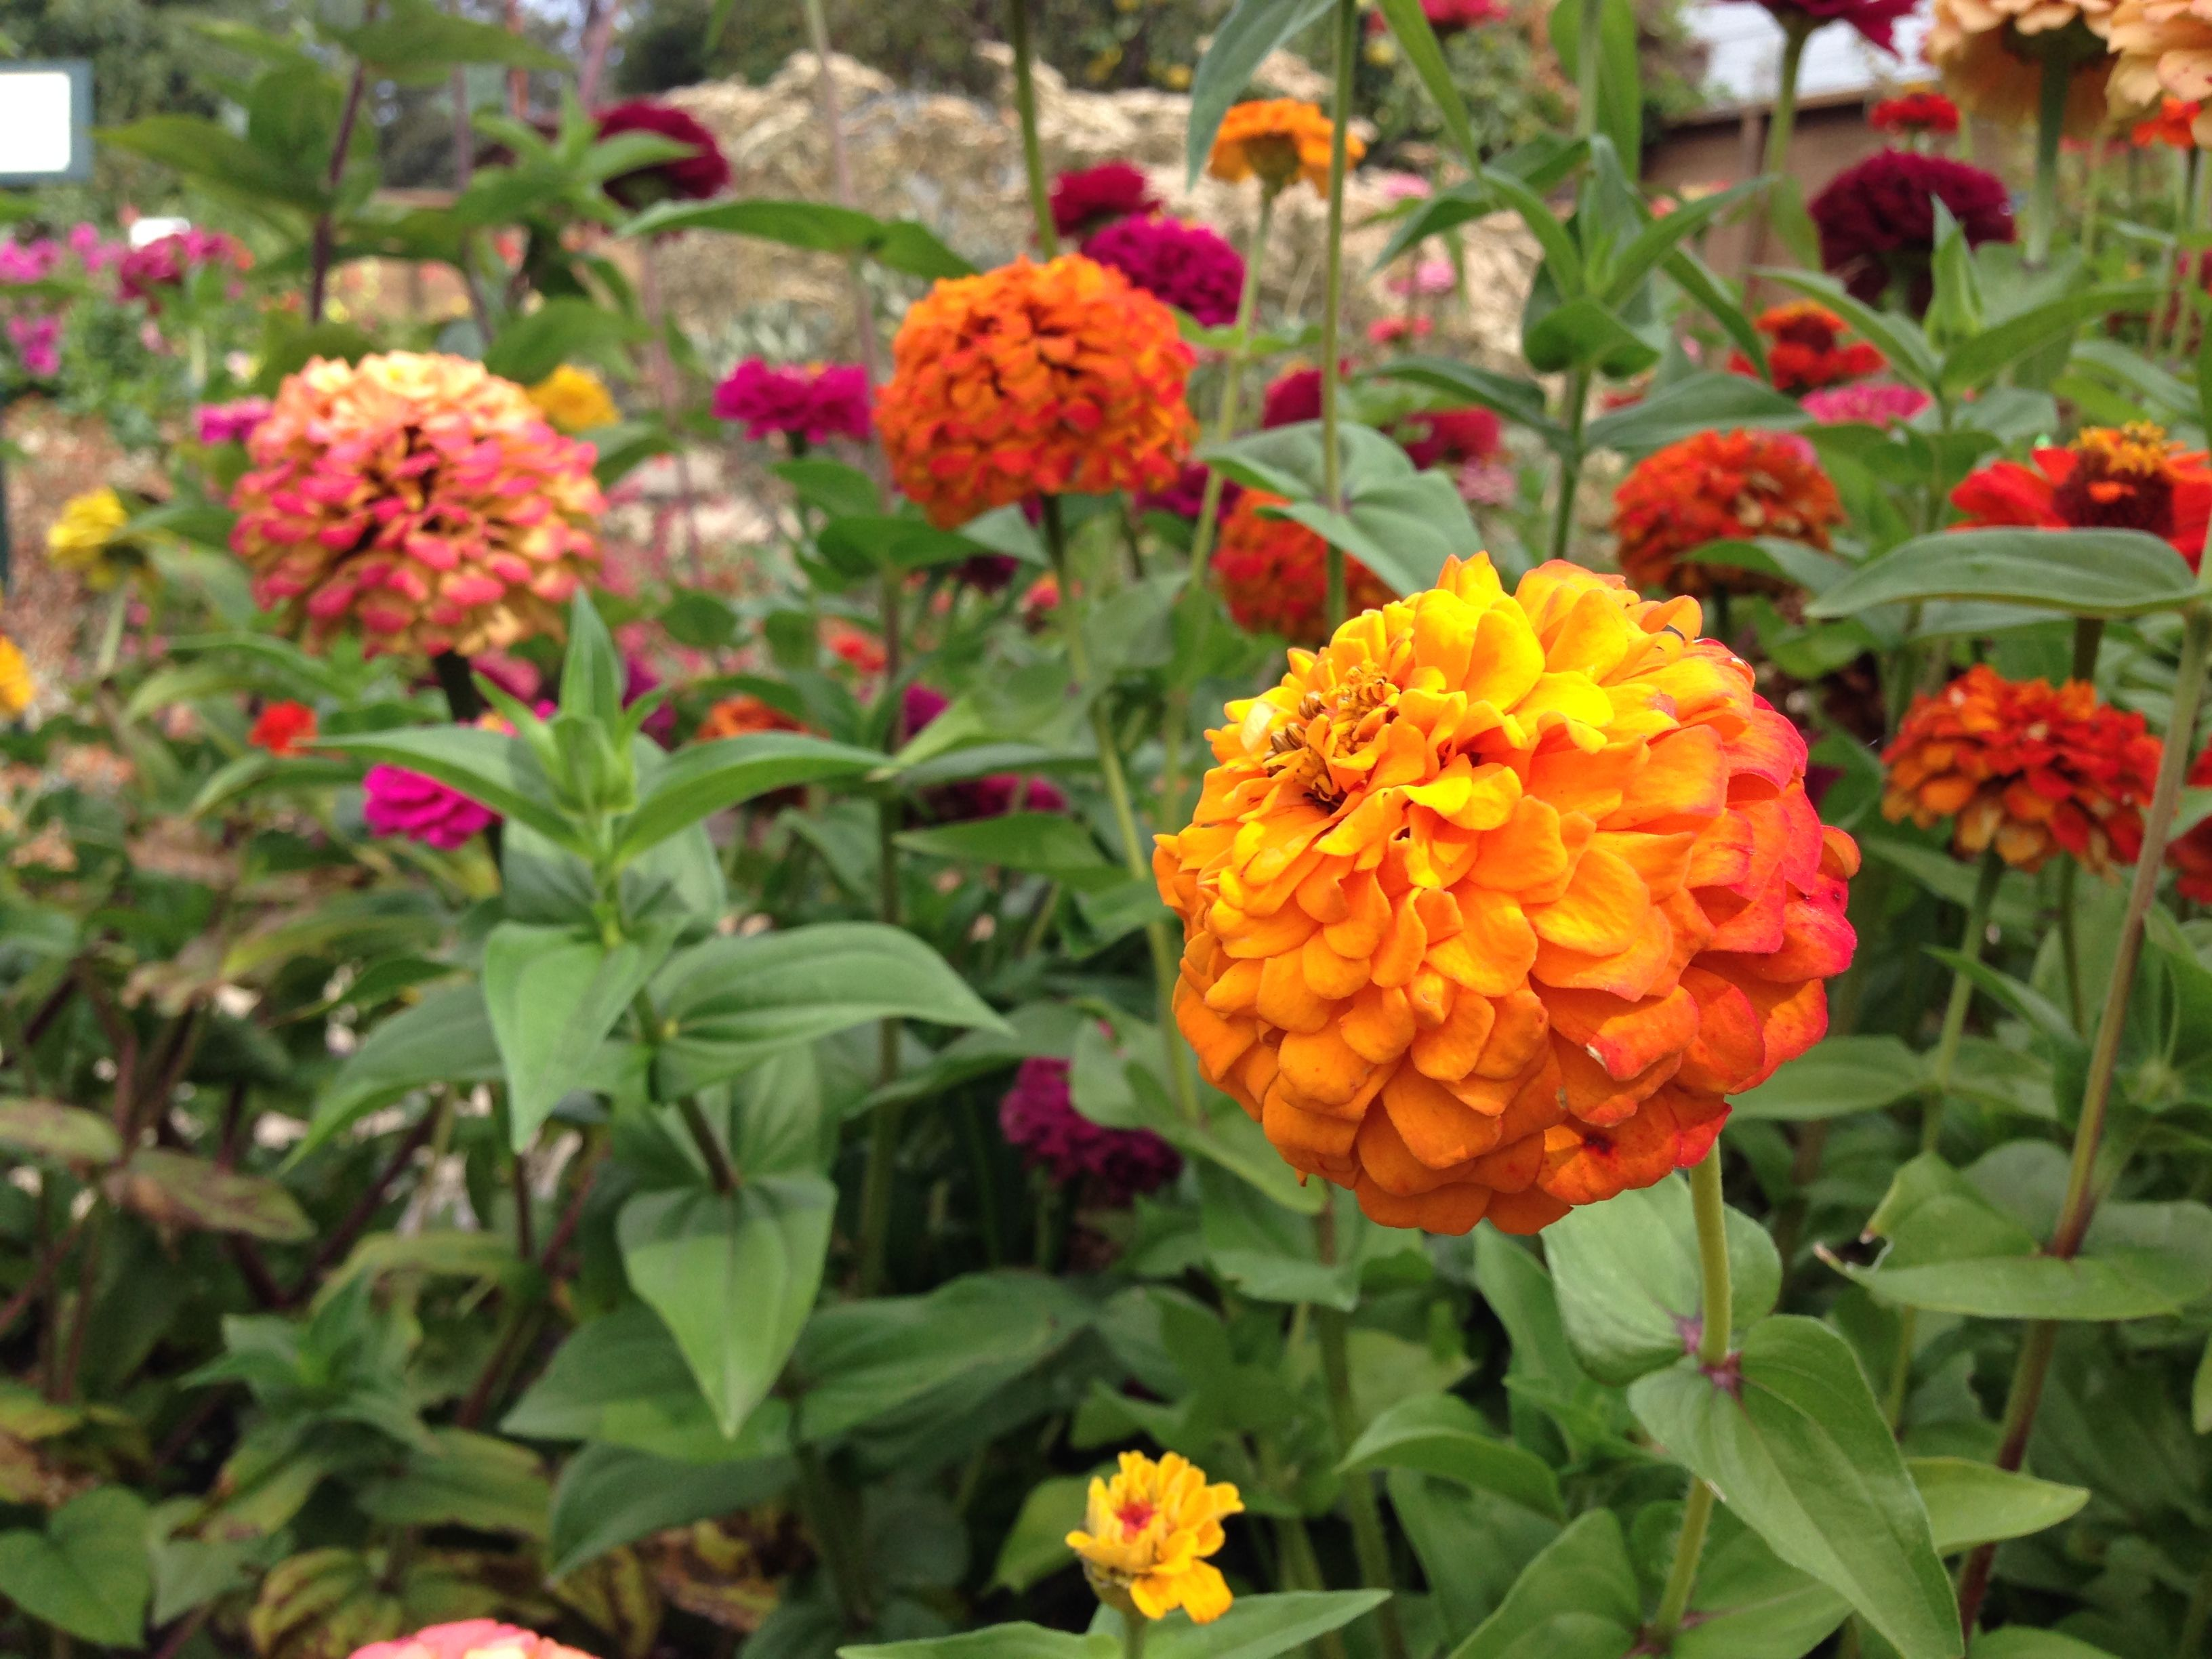 We're ZANY for zinnias! These flowers thrive on volcanic rock dust, an all-natural source of silicon that helps strengthen plant cells and boosts resistance to pests and disease.